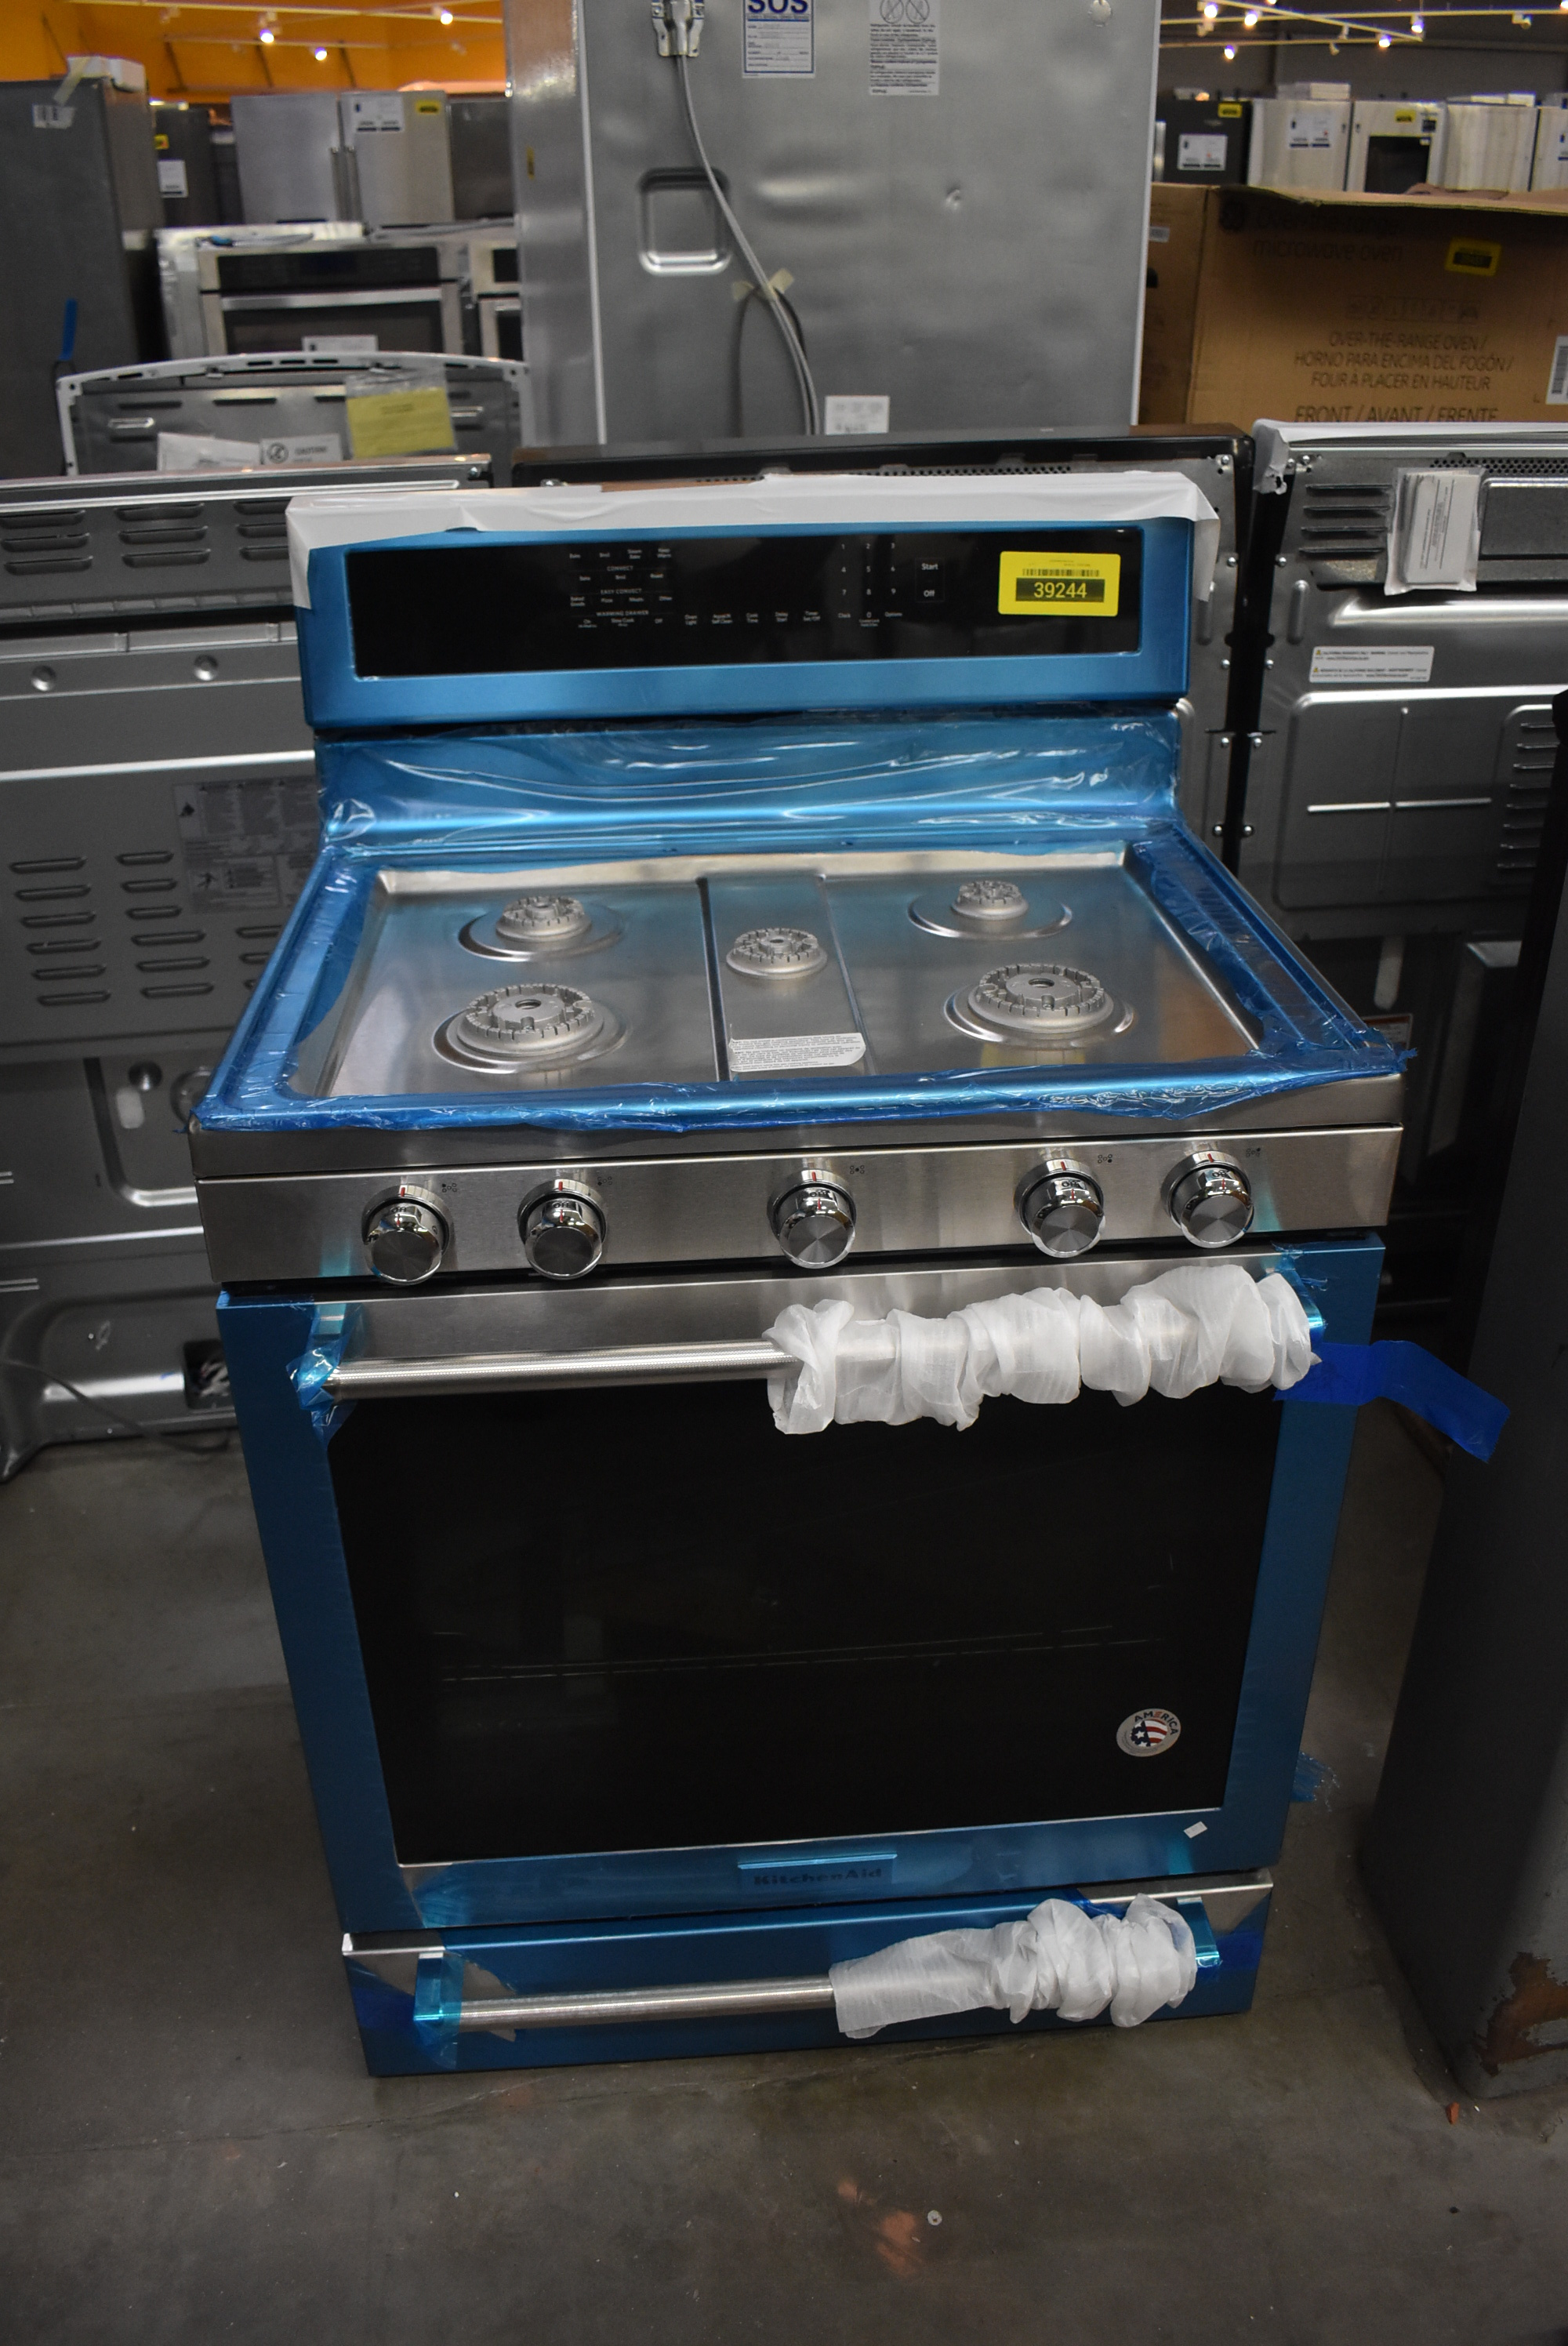 KitchenAid KFGS530ESS 30